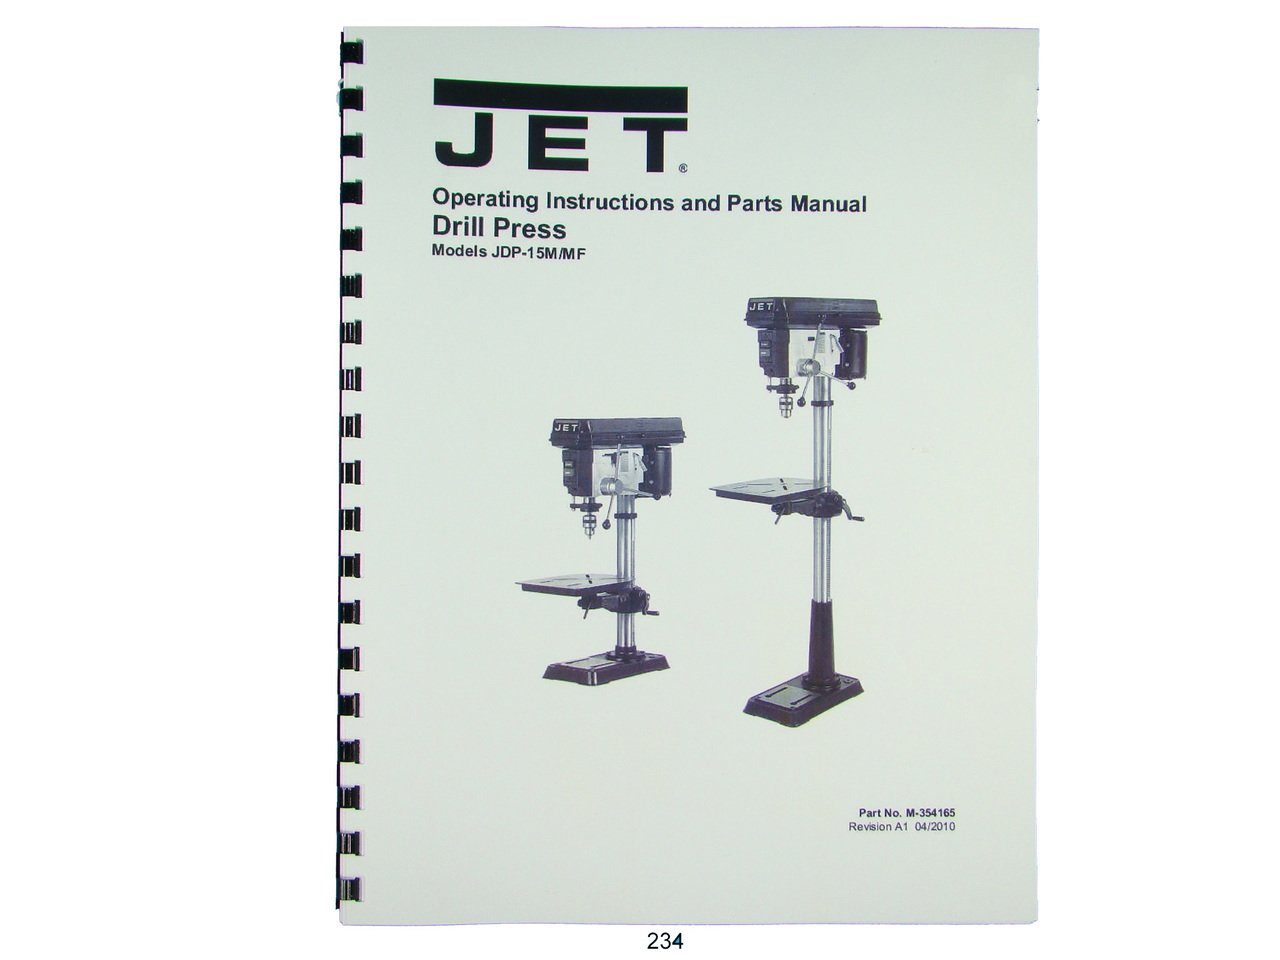 Jet JDP-15M/MF Drill Press Operator & Parts List Manual: Jet: Amazon on drill press safety, drill press controls, drill press transmission, drill press plug, drill press tools, drill press forum, drill press frame, drill press maintenance, drill press accessories, drill press switch, drill press assembly, drill press lighting, drill press capacitor, drill press specifications, drill press dimensions, drill press operation, drill press lubrication system, drill press exploded view, drill press cabinet,